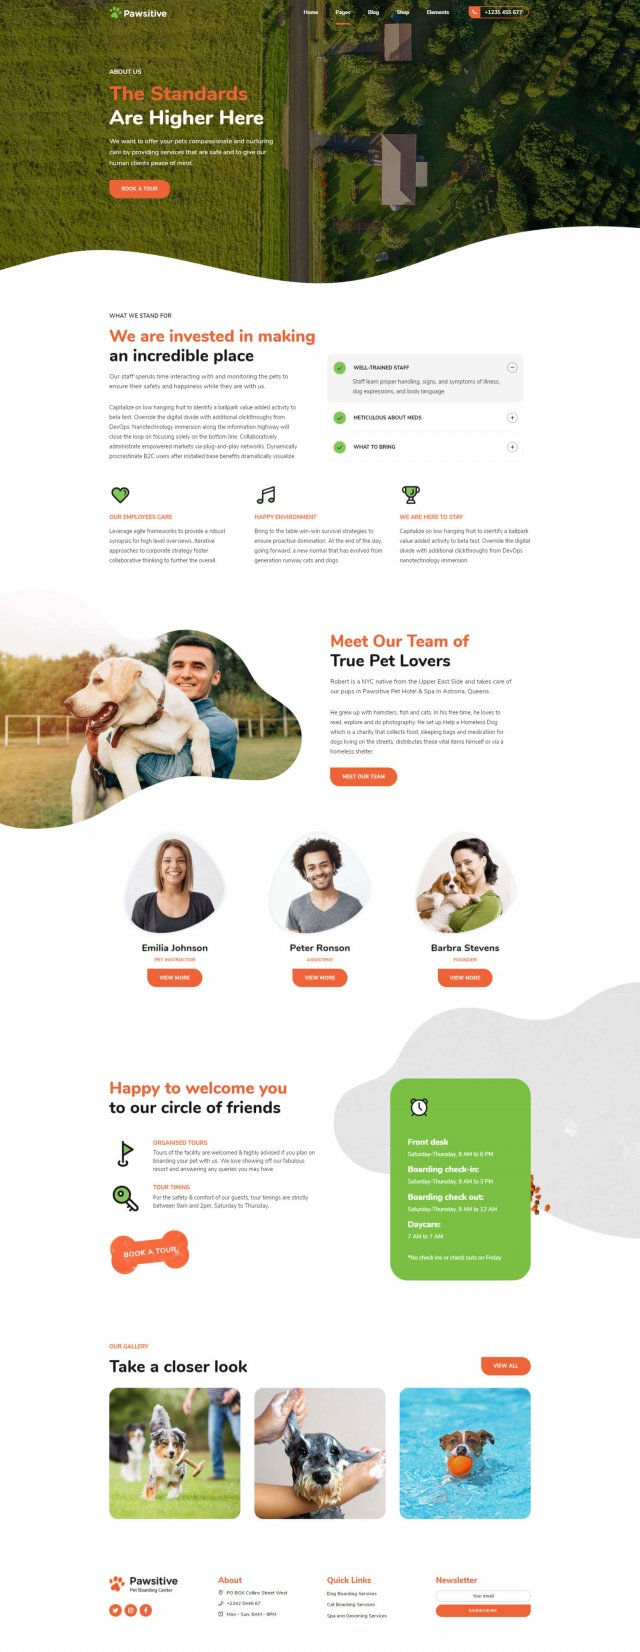 http://pawsitive.bold-themes.com/wp-content/uploads/2019/09/Buddy-About-Us-640x1652.jpg